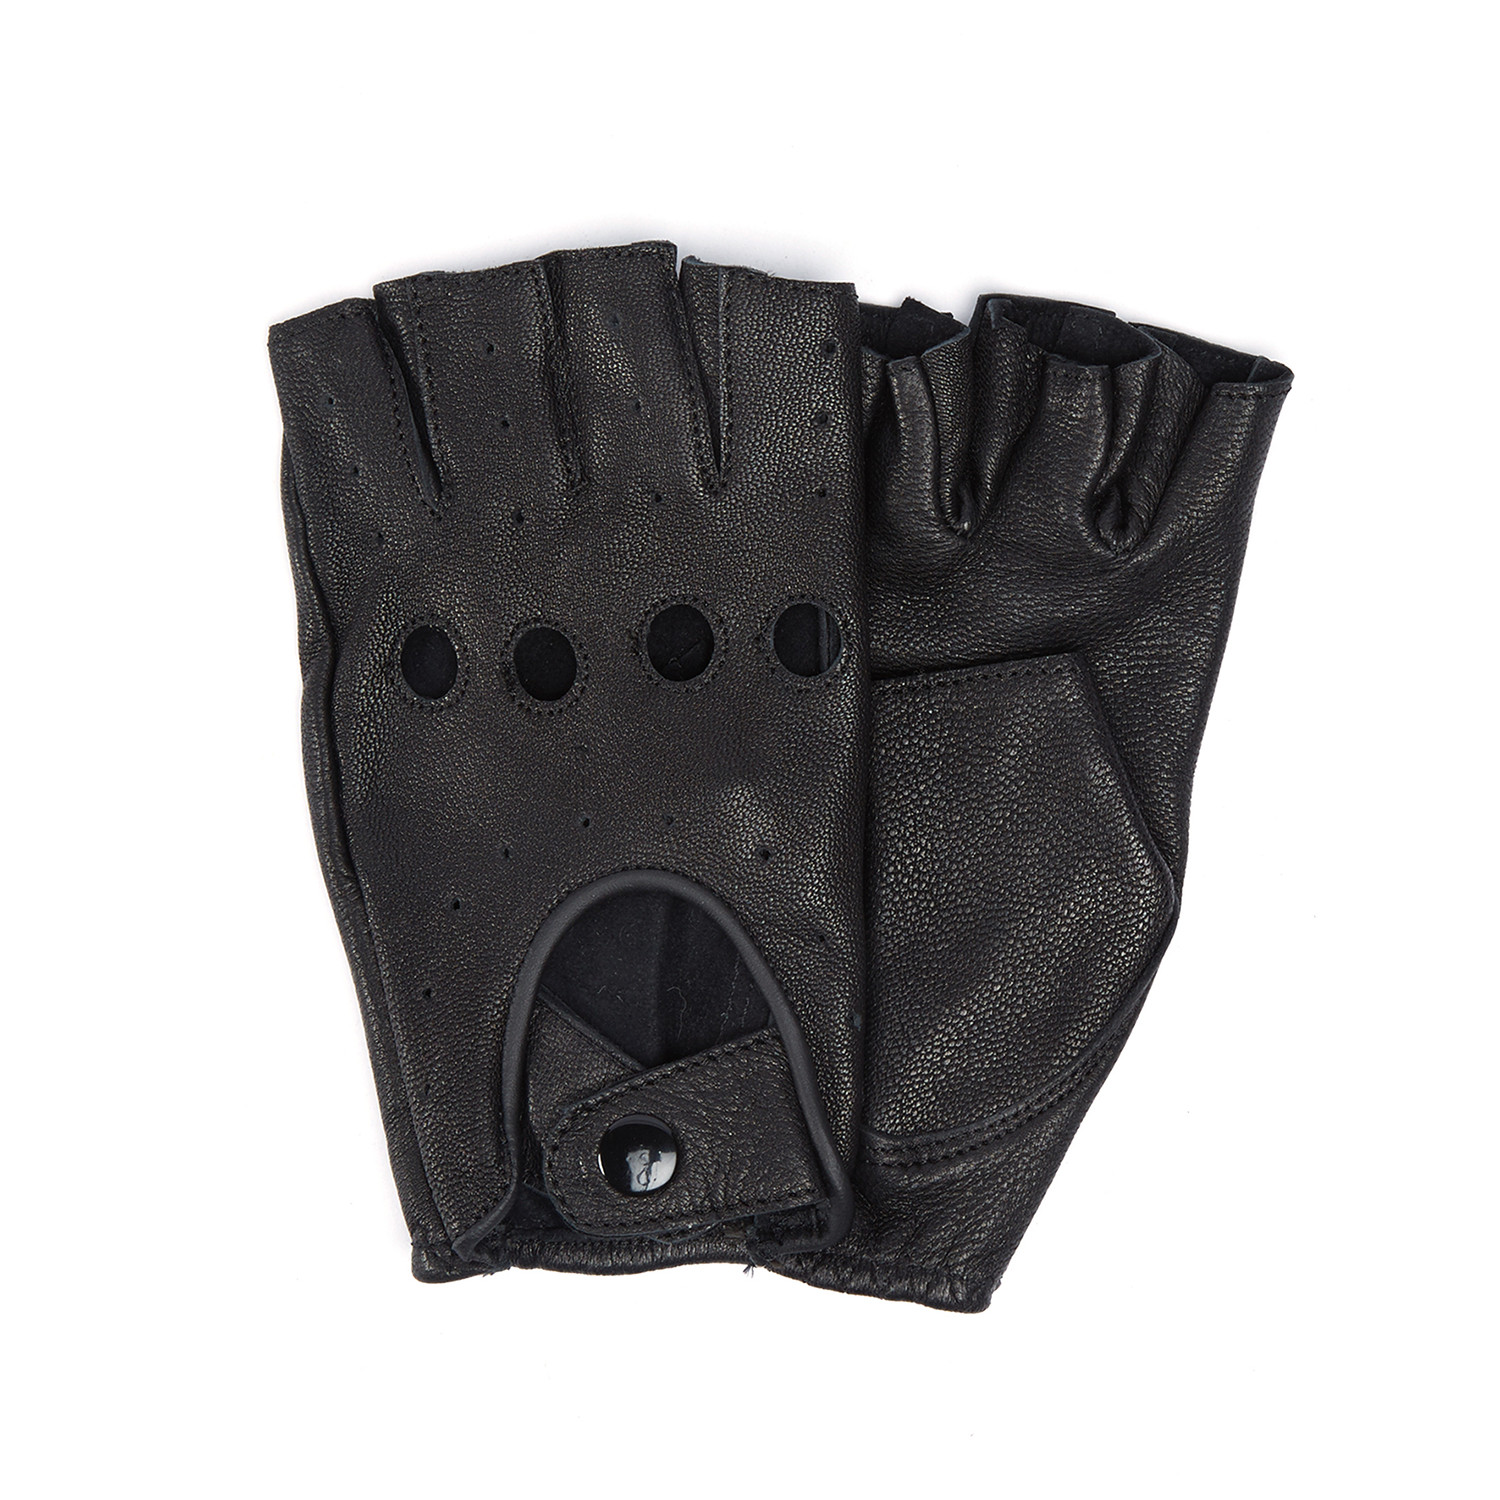 Leather cut off driving gloves black s m